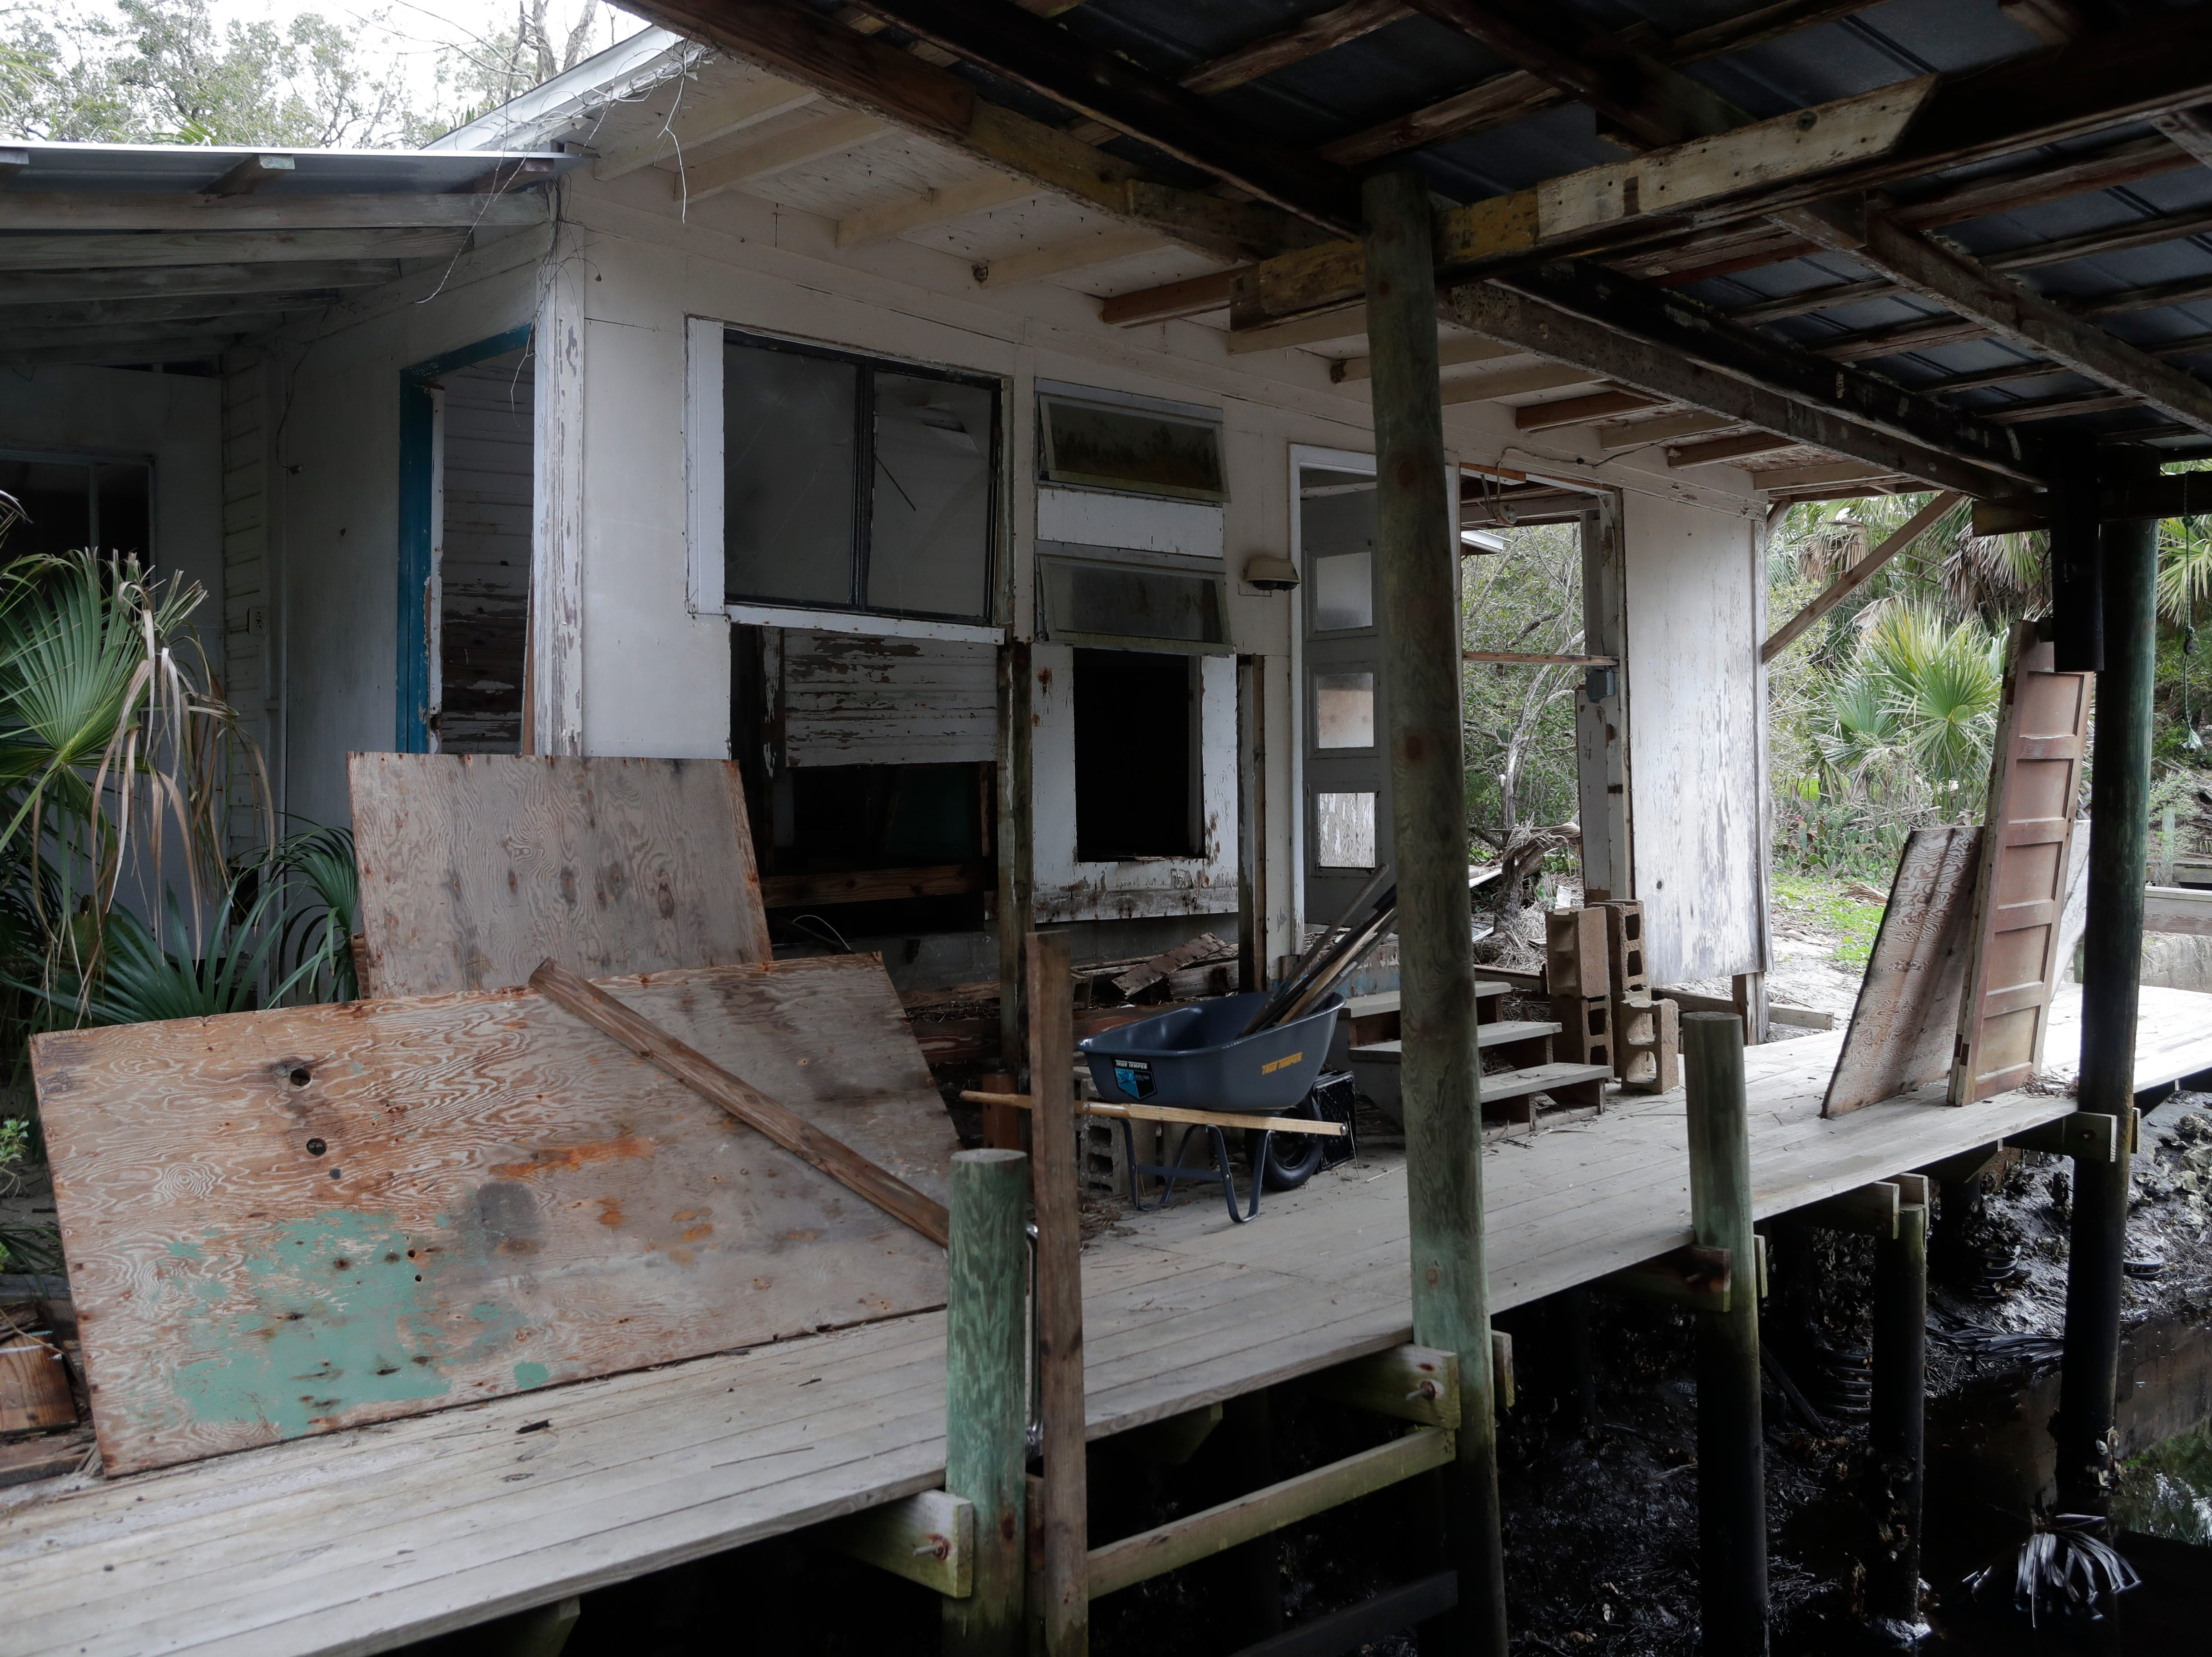 The boathouse at Spring Creek was left in shambles after Hurricane Michael hit the panhandle. The boathouse remains torn apart Tuesday, Feb. 5, 2019.